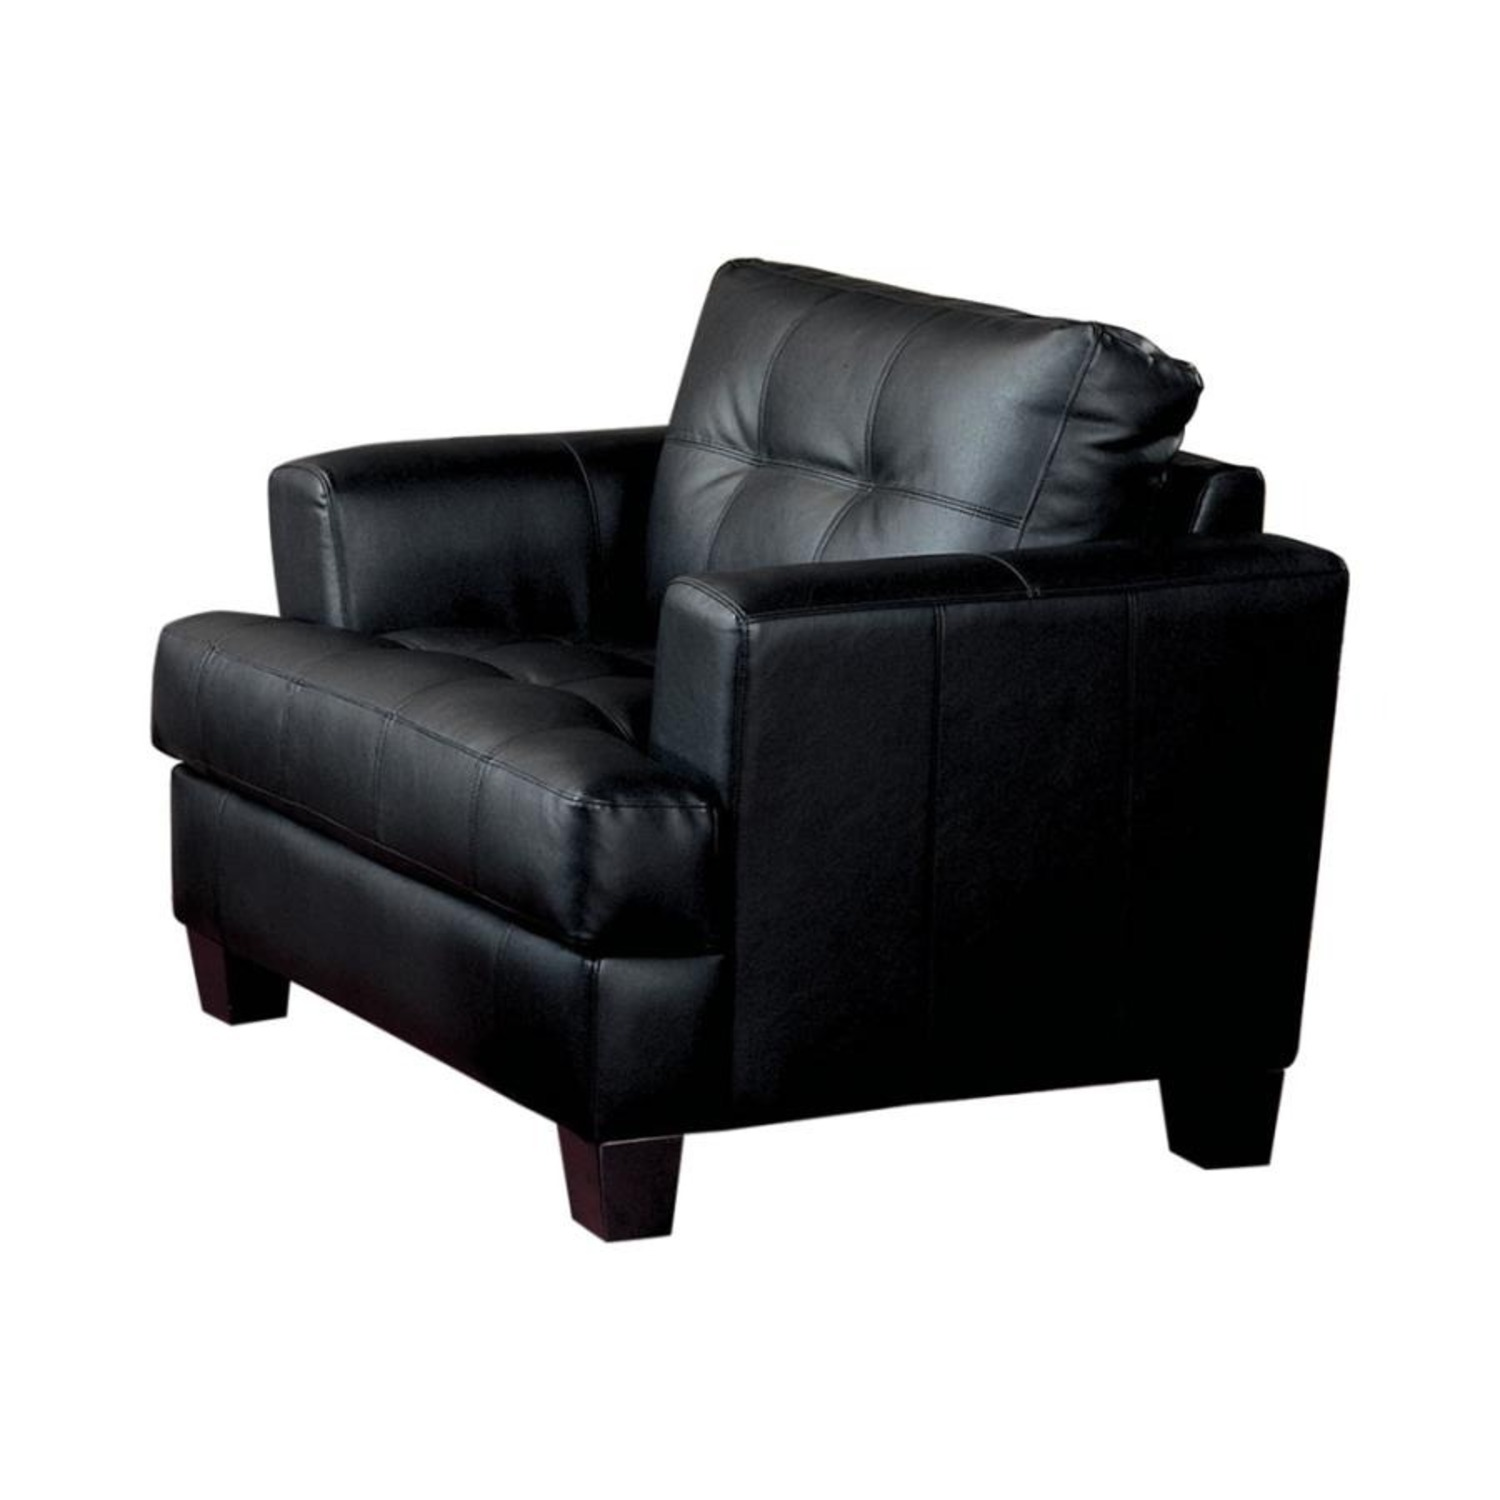 Chair In Black Padded Breathable Leatherette - image-0